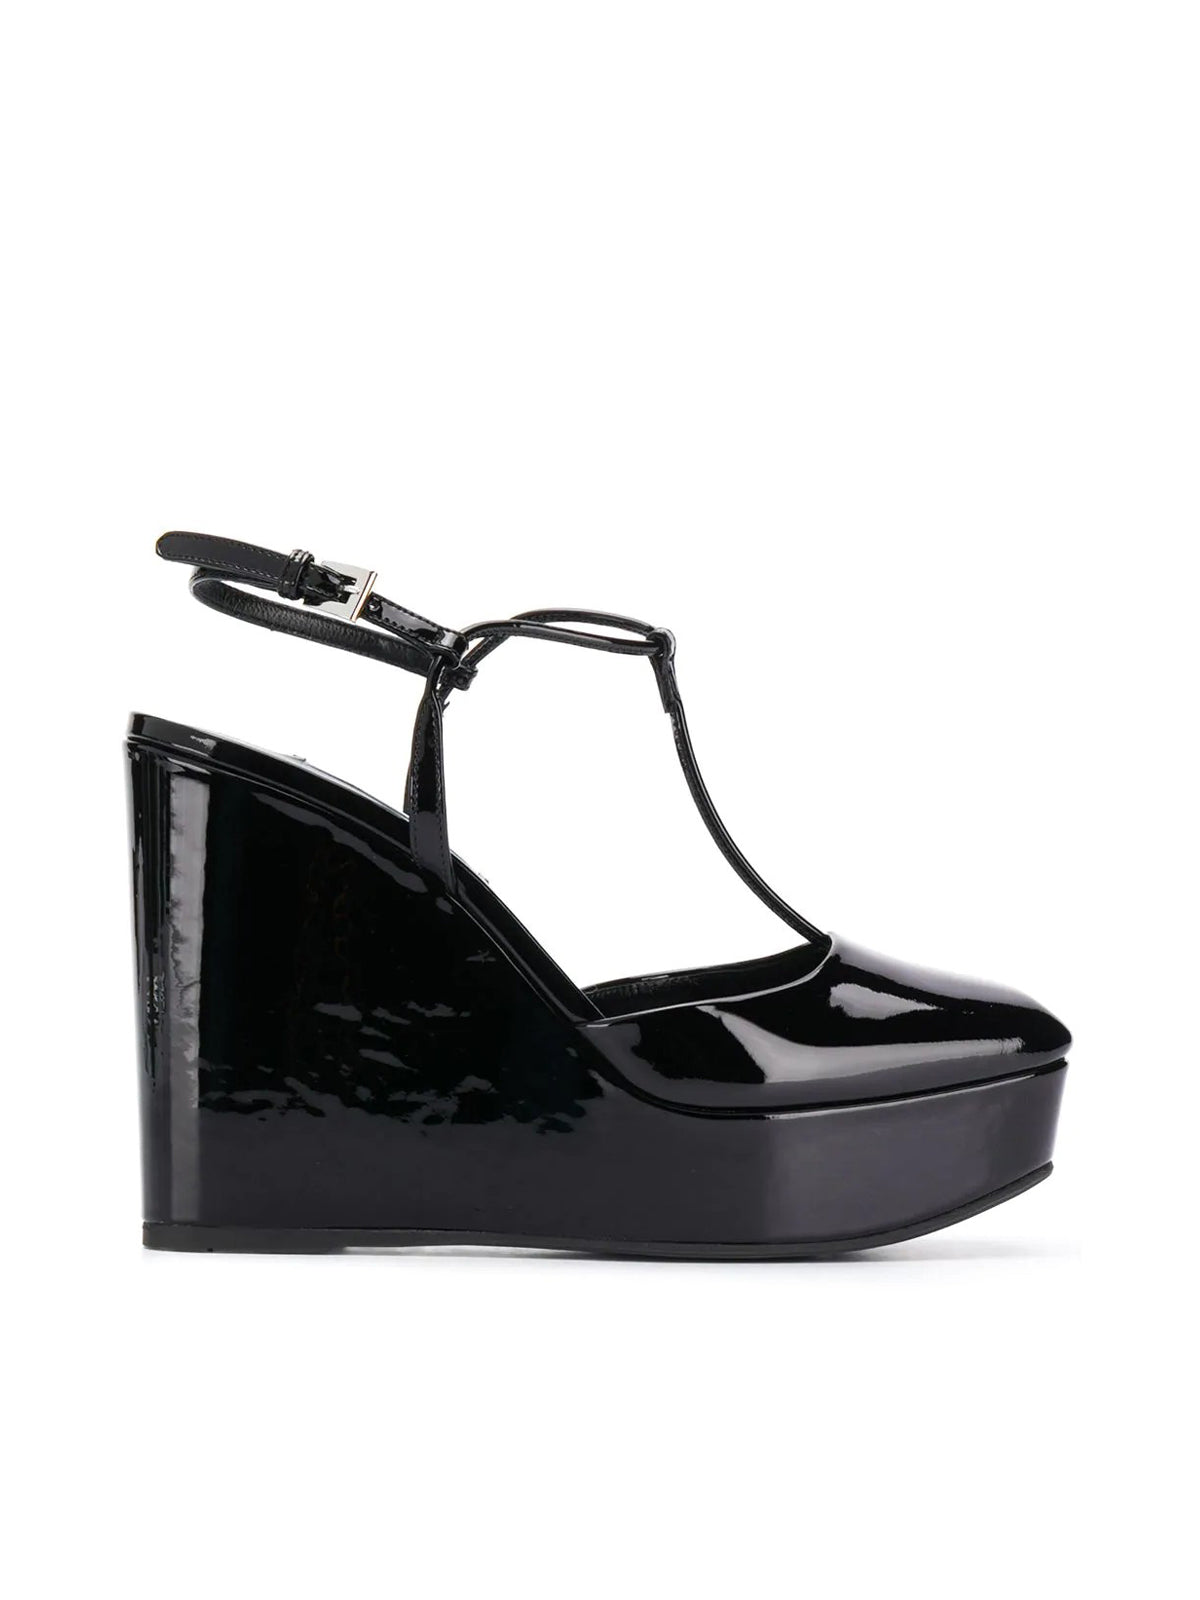 SQUARE TOE WEDGE PUMPS